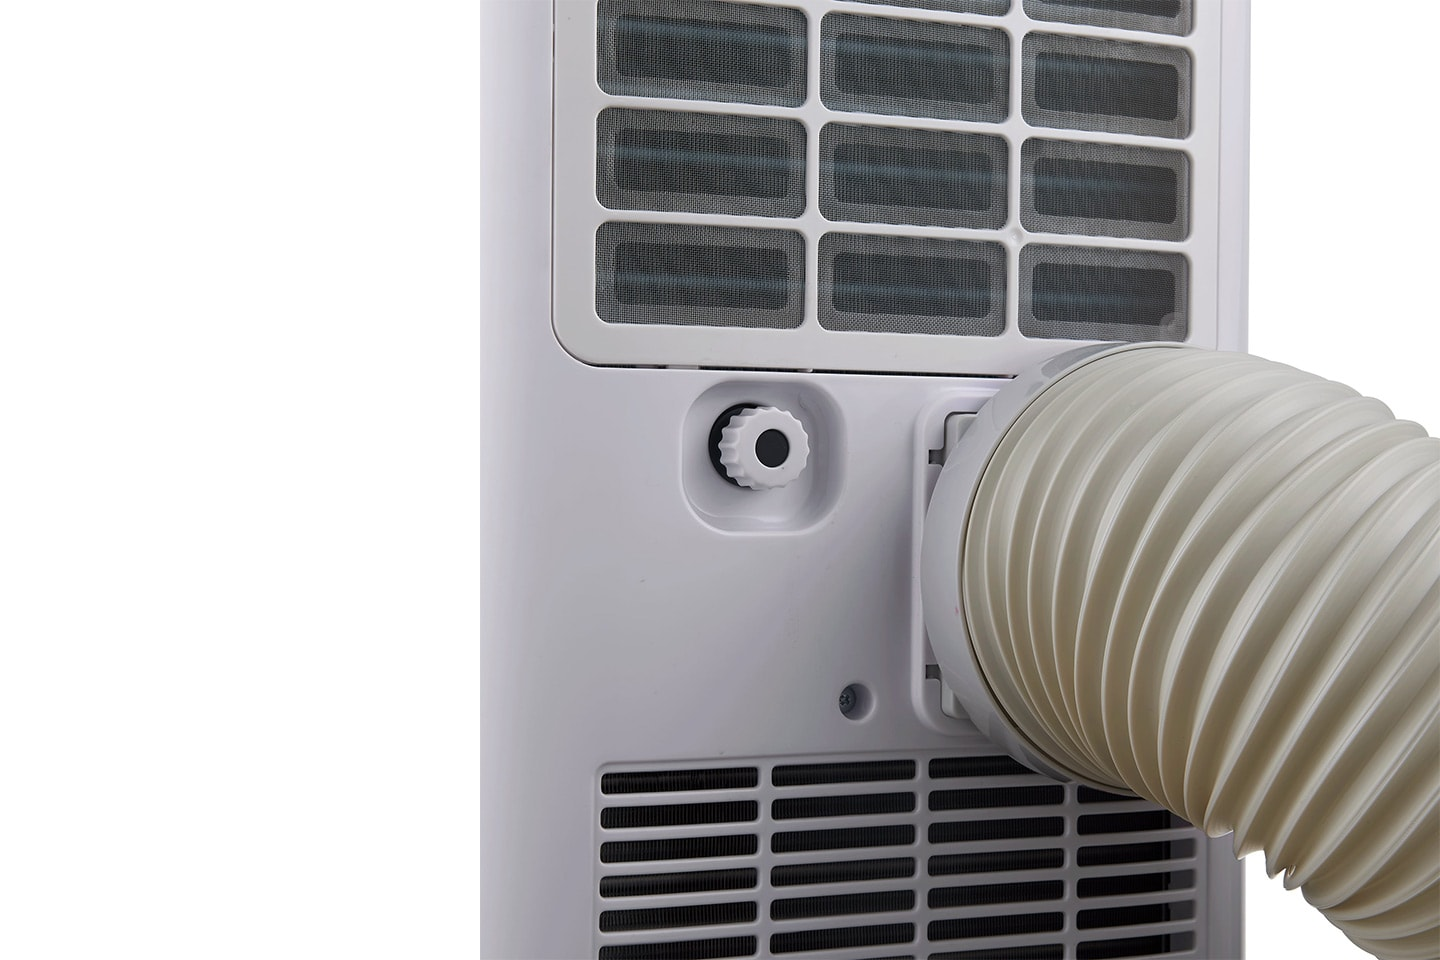 Moa A019 Air Conditioner 3-i-1